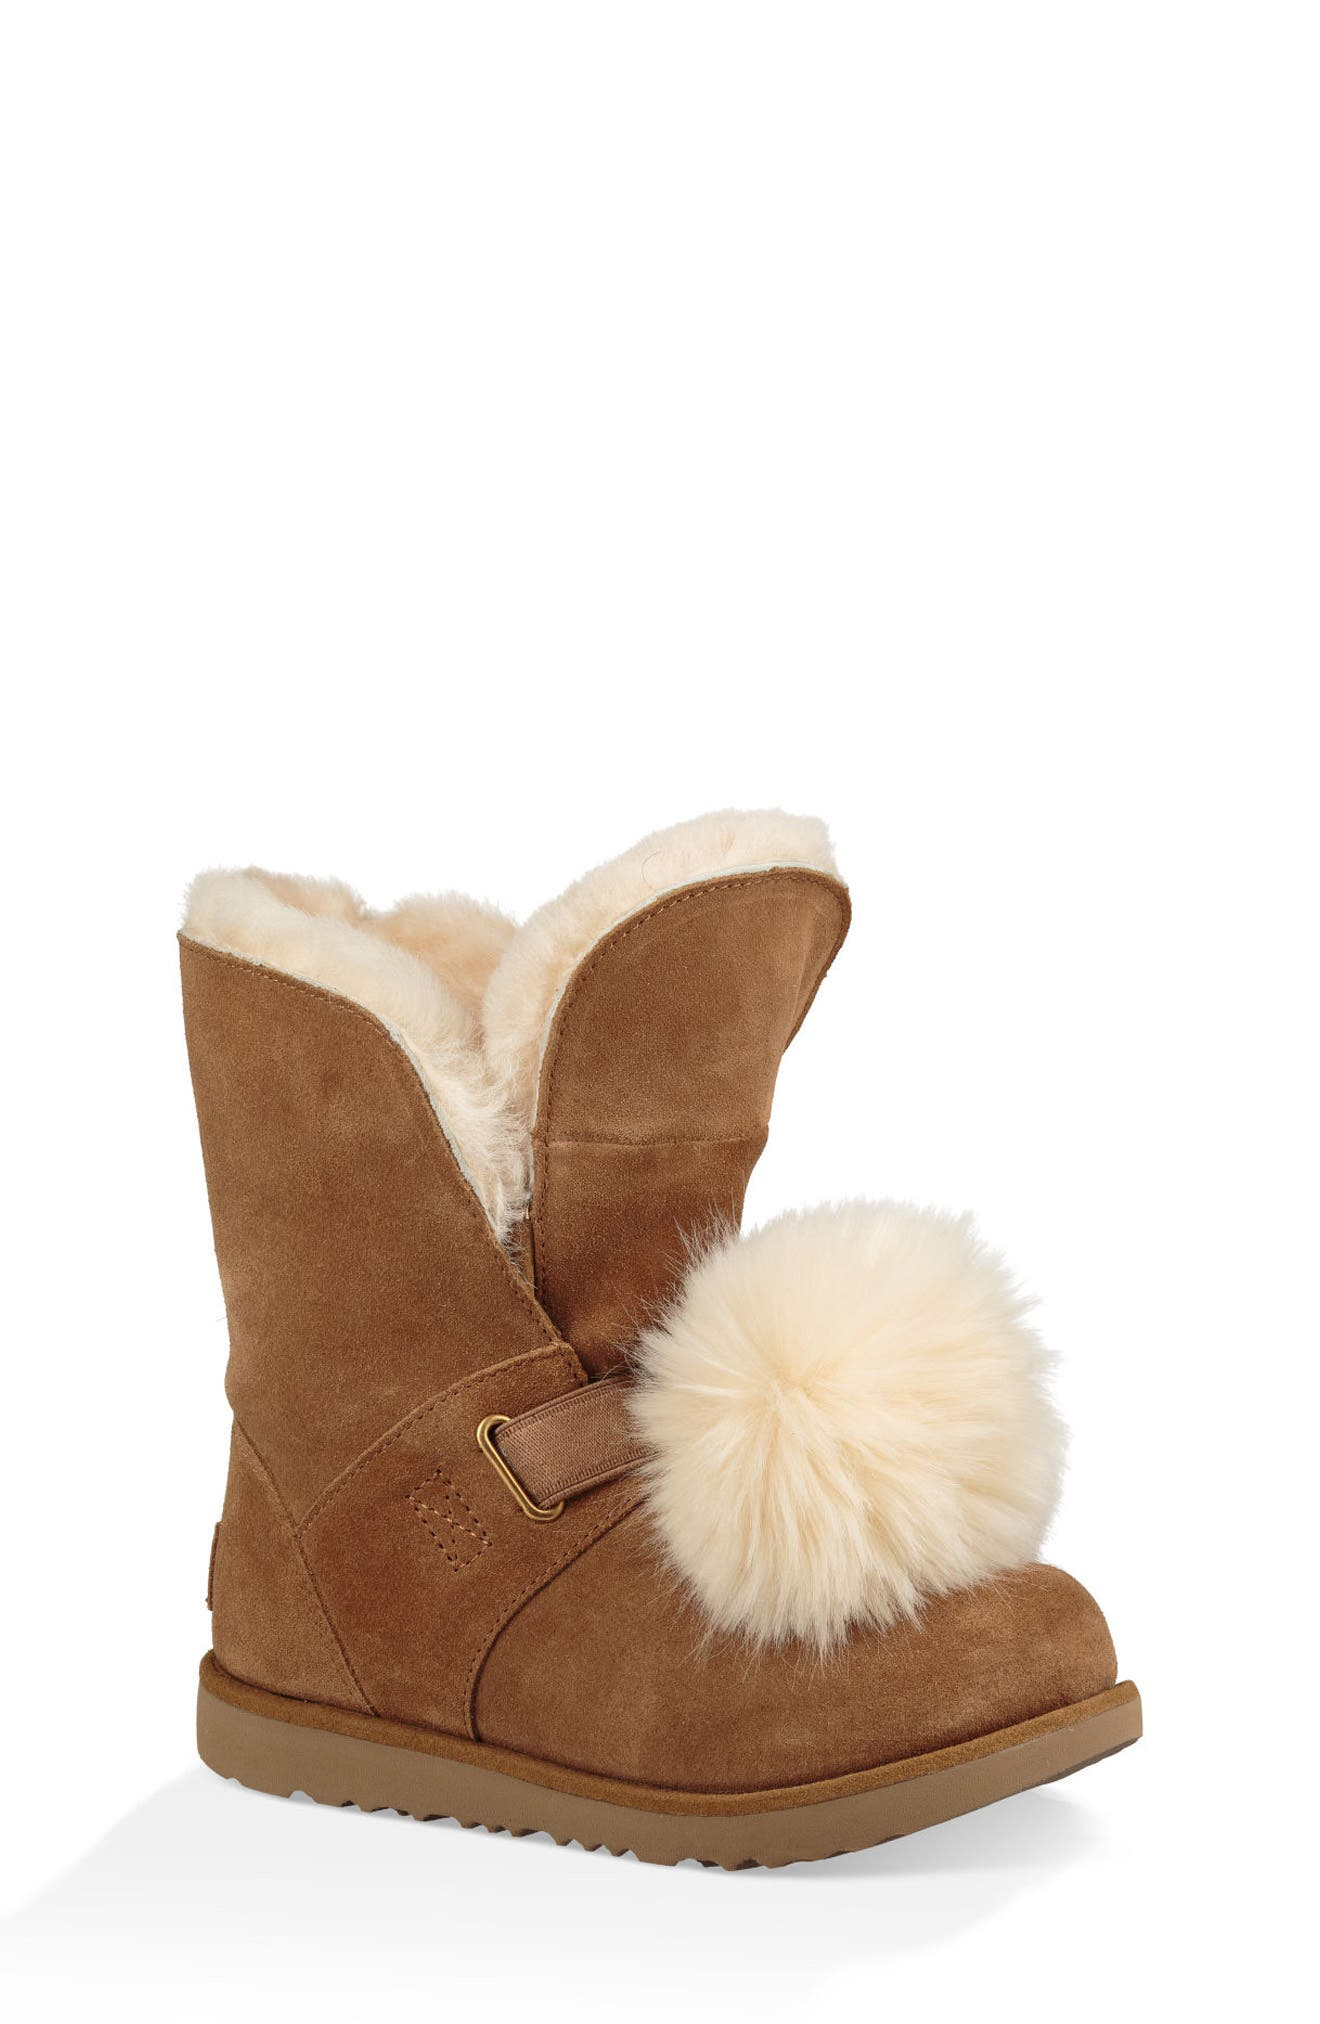 Isley Genuine Shearling Waterproof Pom Boot,                             Main thumbnail 1, color,                             219